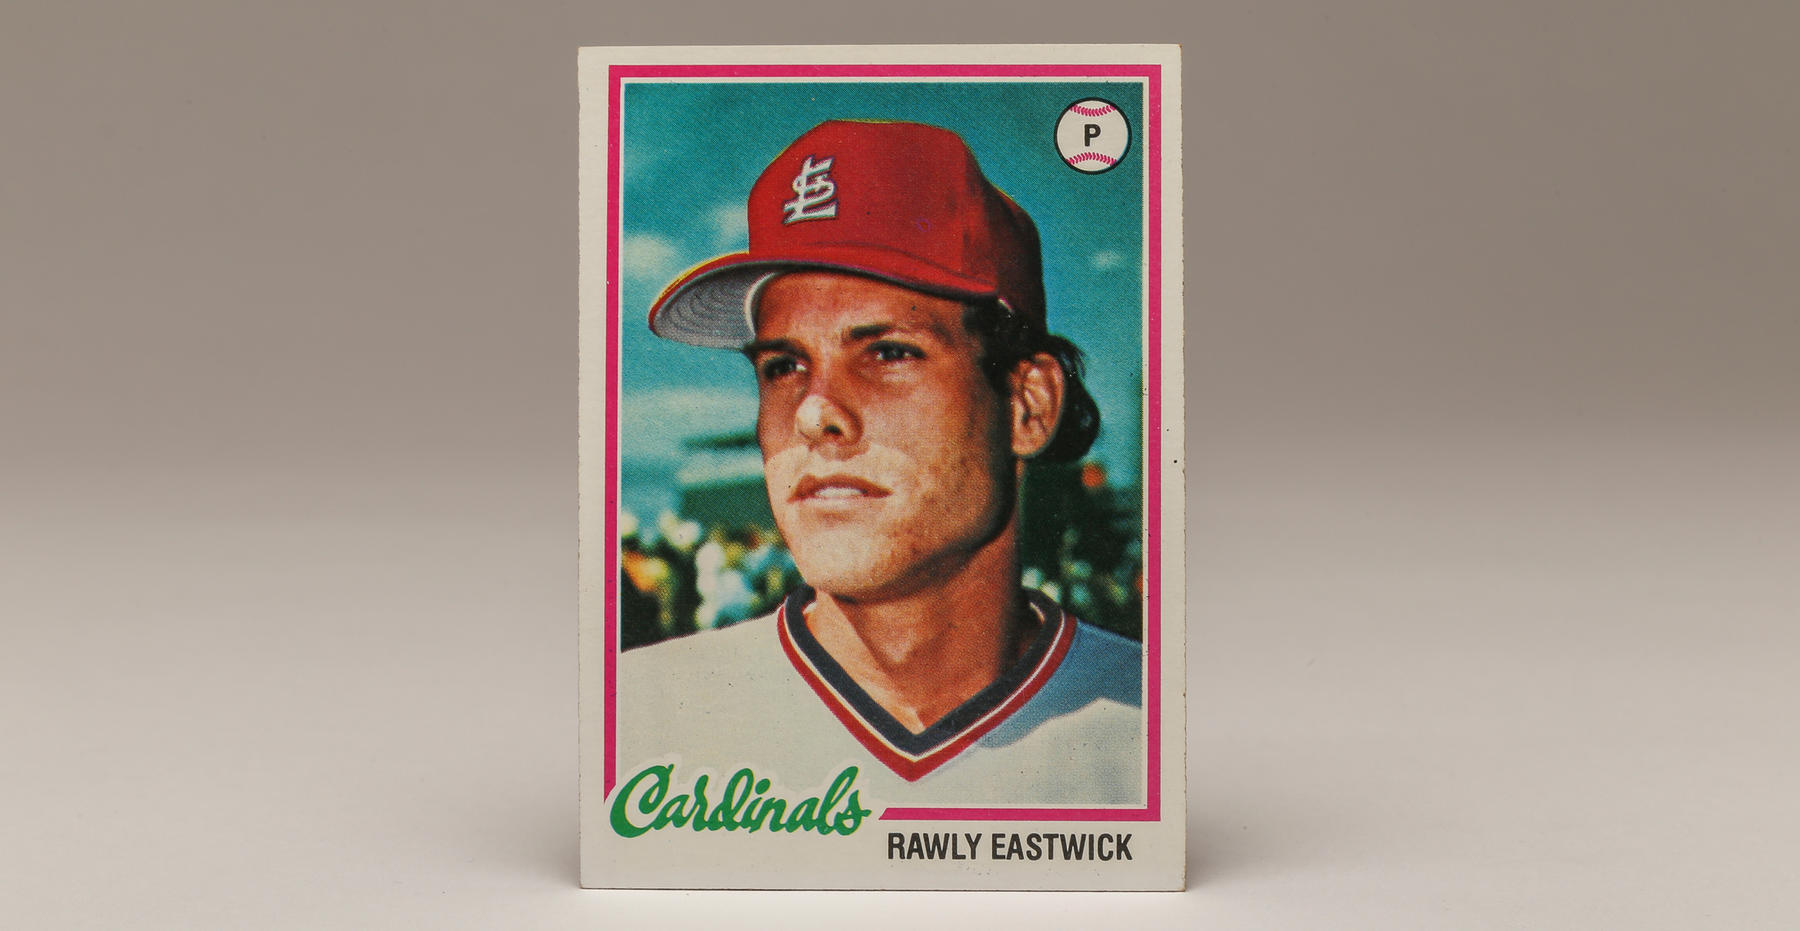 1978 Rawly Eastwick Topps card. (Parker Fish / National Baseball Hall of Fame)